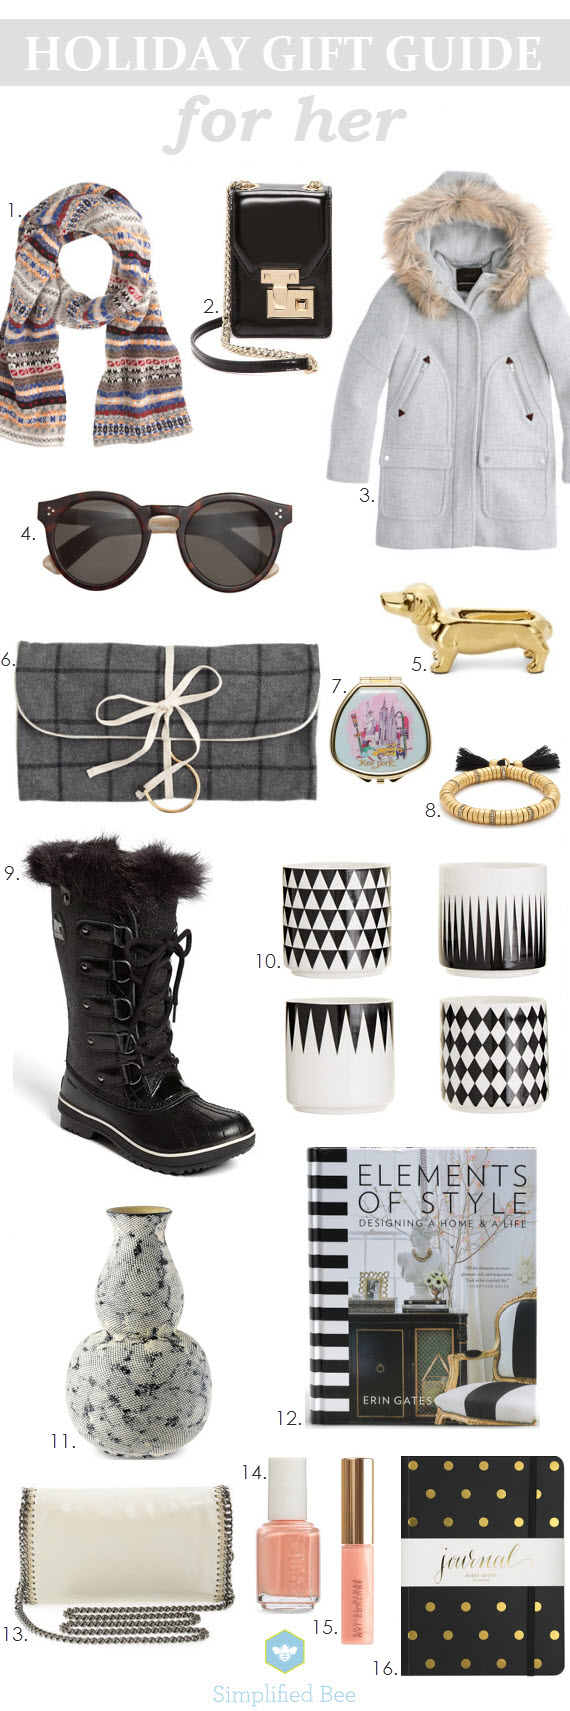 Holiday Gift Guide 2014 - For Her // Simplified Bee #holidaygifts #giftguide #holiday2014